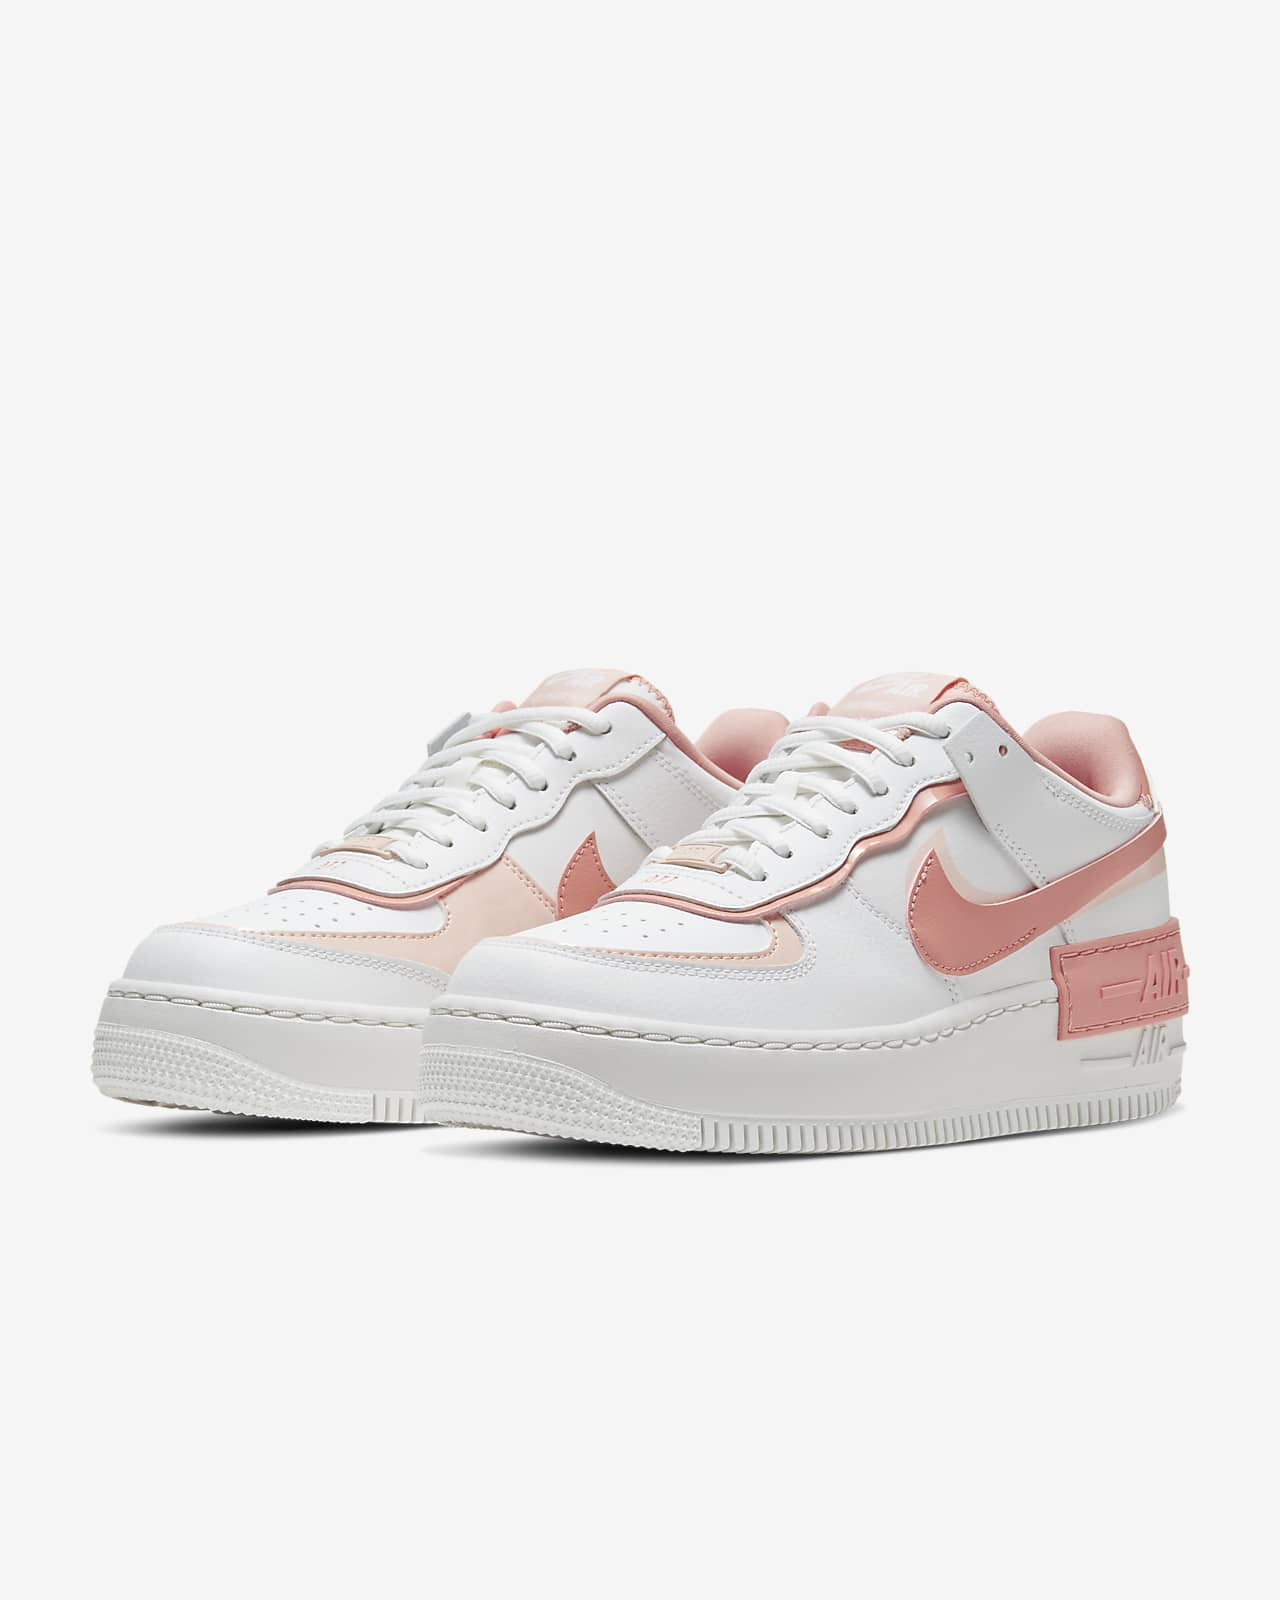 Nike Air Force 1 Shadow Women S Shoe Nike My As of 2015, the sneaker was said to be released in. nike air force 1 shadow women s shoe